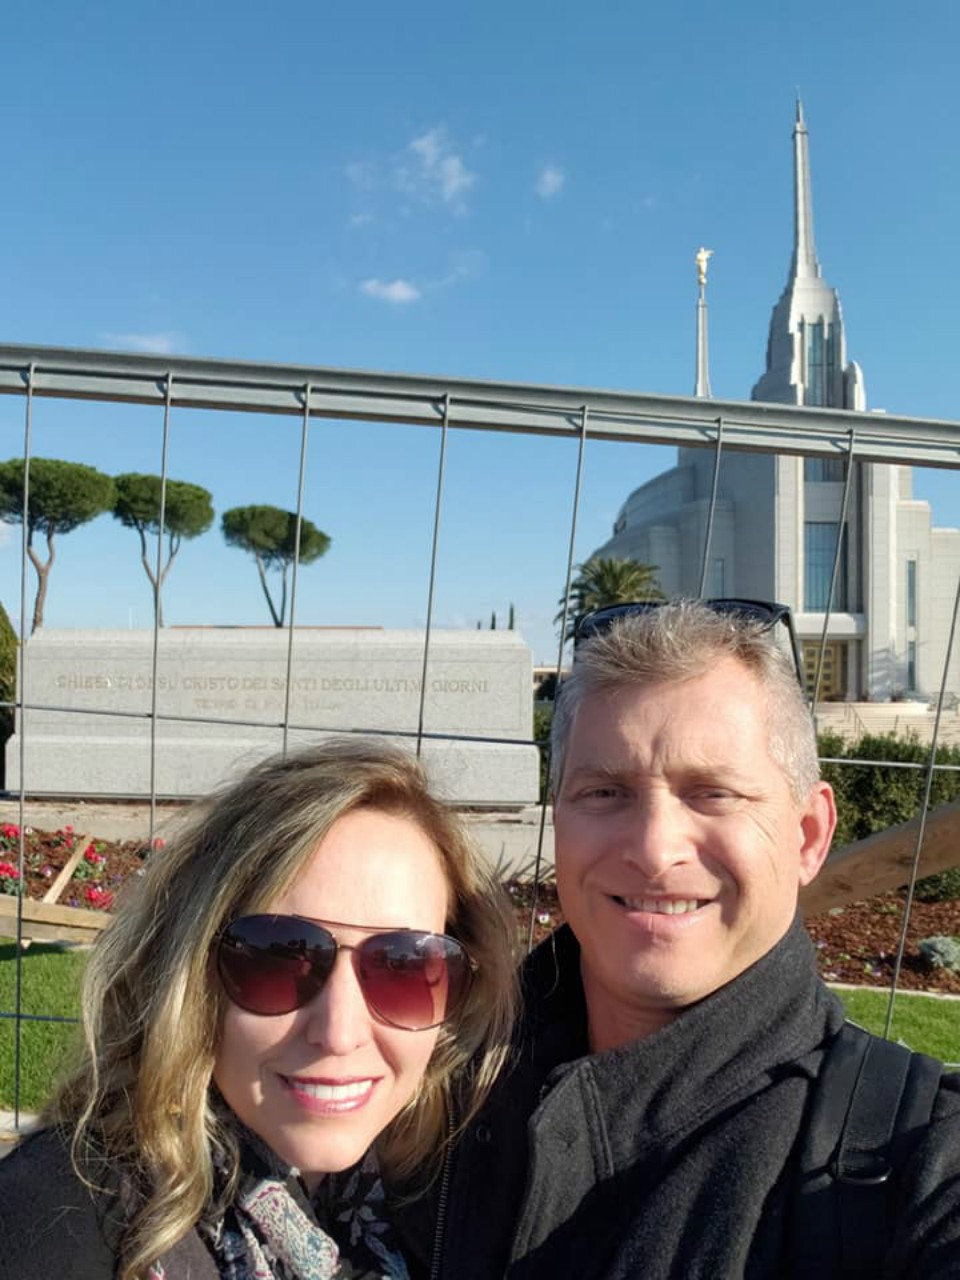 At the Rome LDS Temple